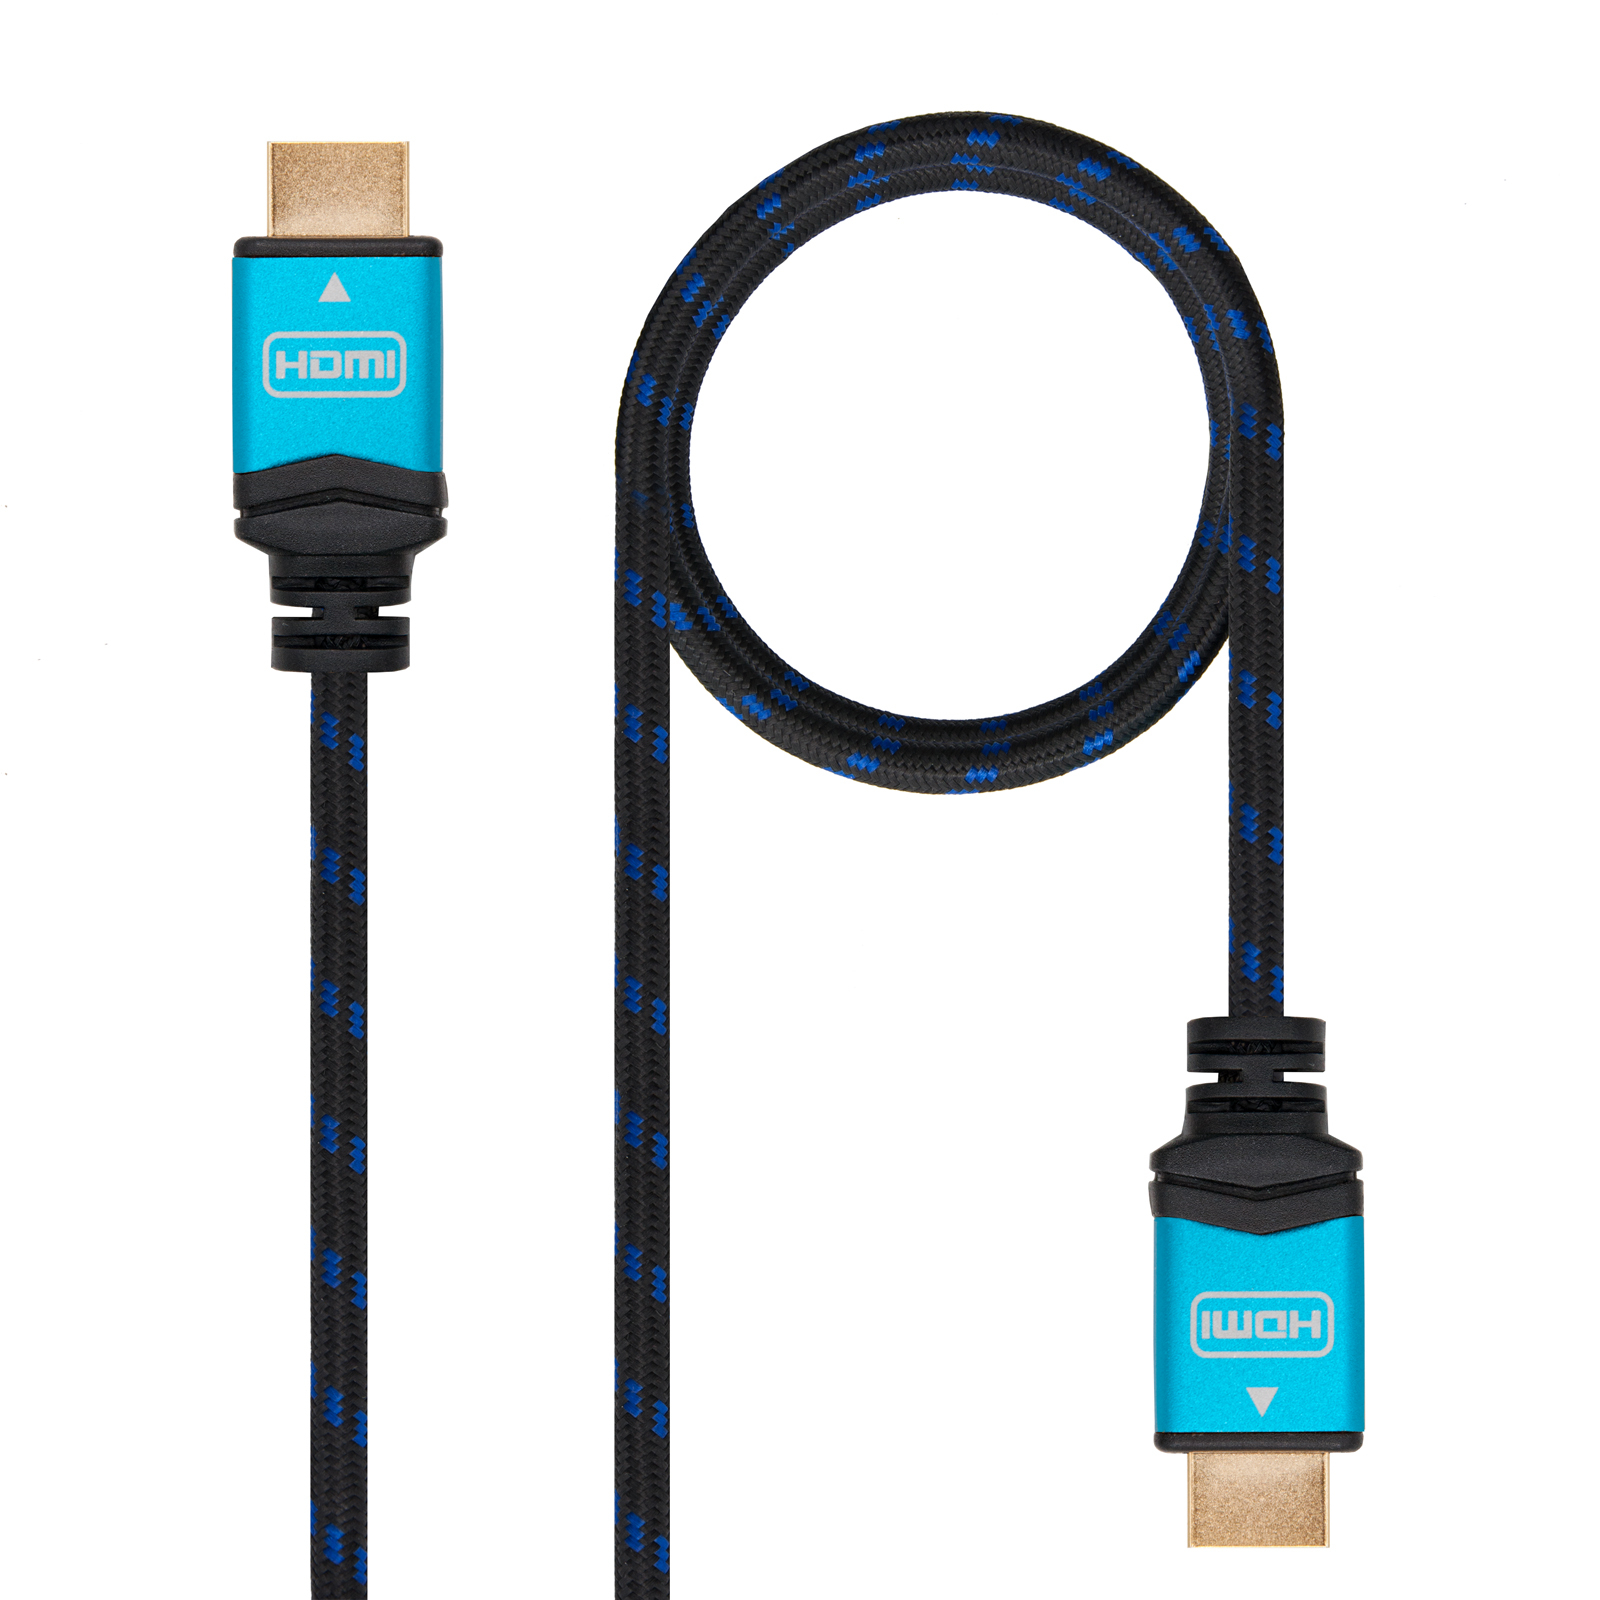 Cable HDMI TO HDMI 7 M HDMI V2.0 4k @ 60Hz 18gbps 10.15.3707